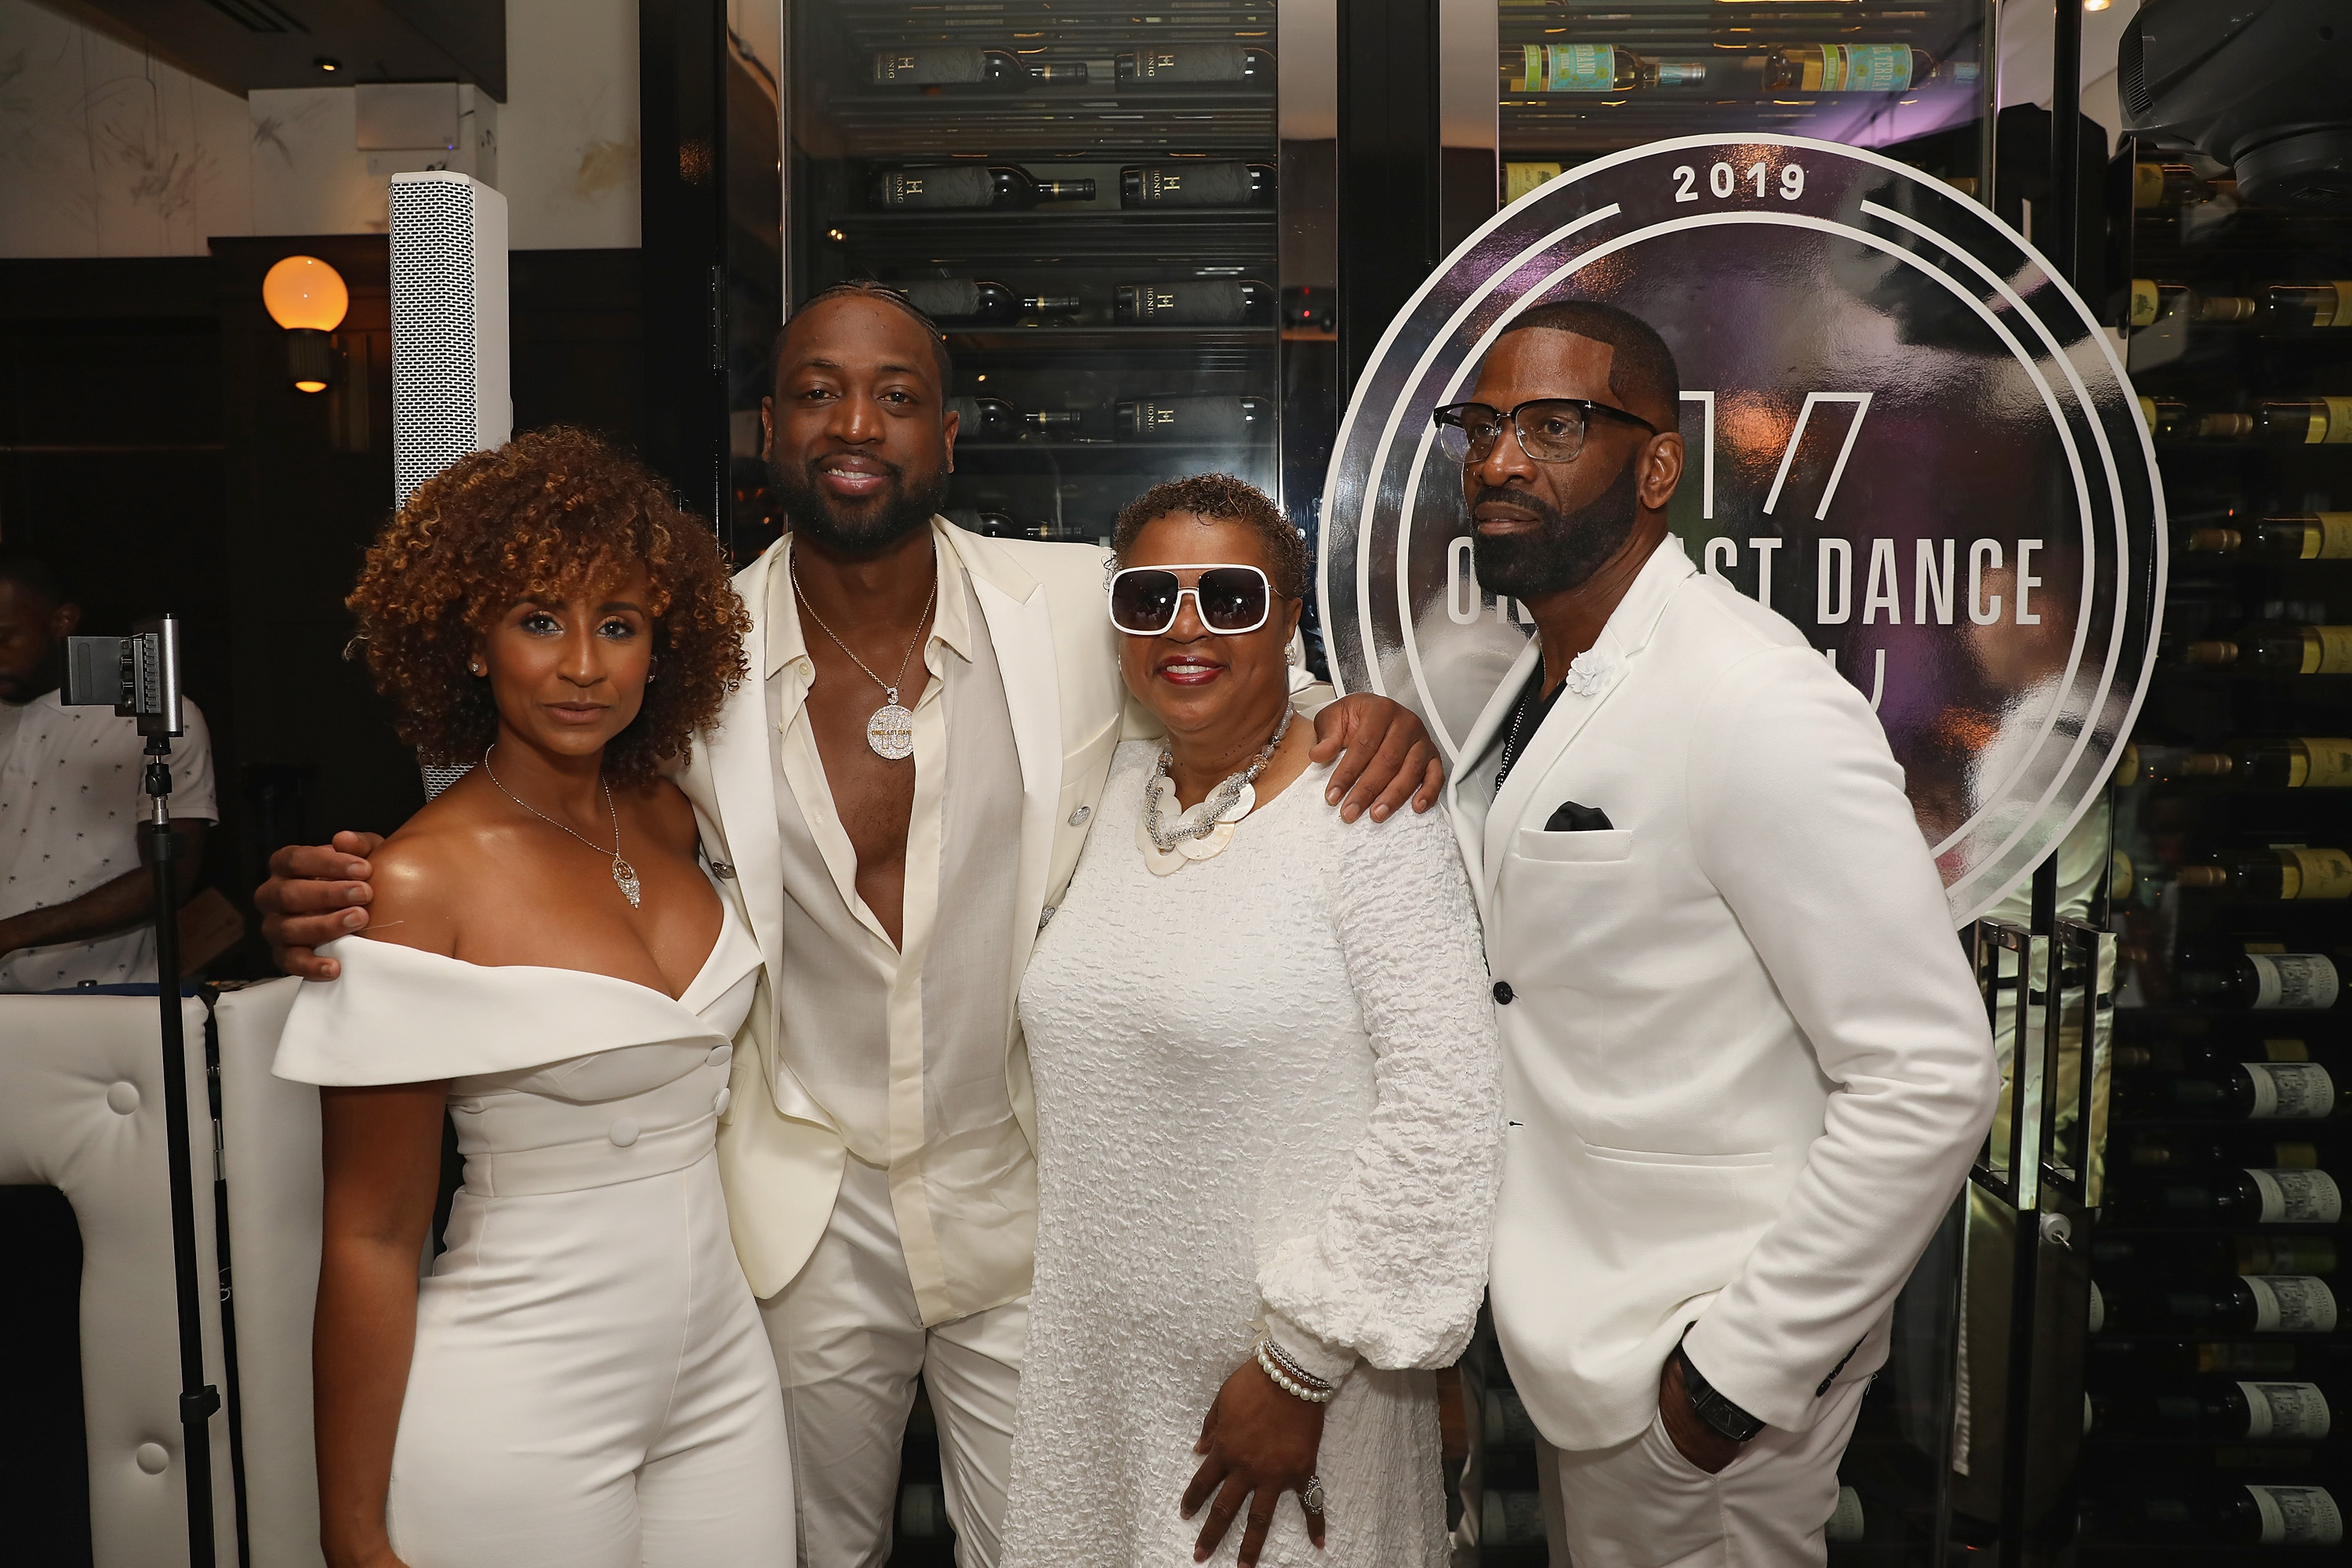 NBA stars, celebrities honor Wade at 'One Last Dance' party in Miami